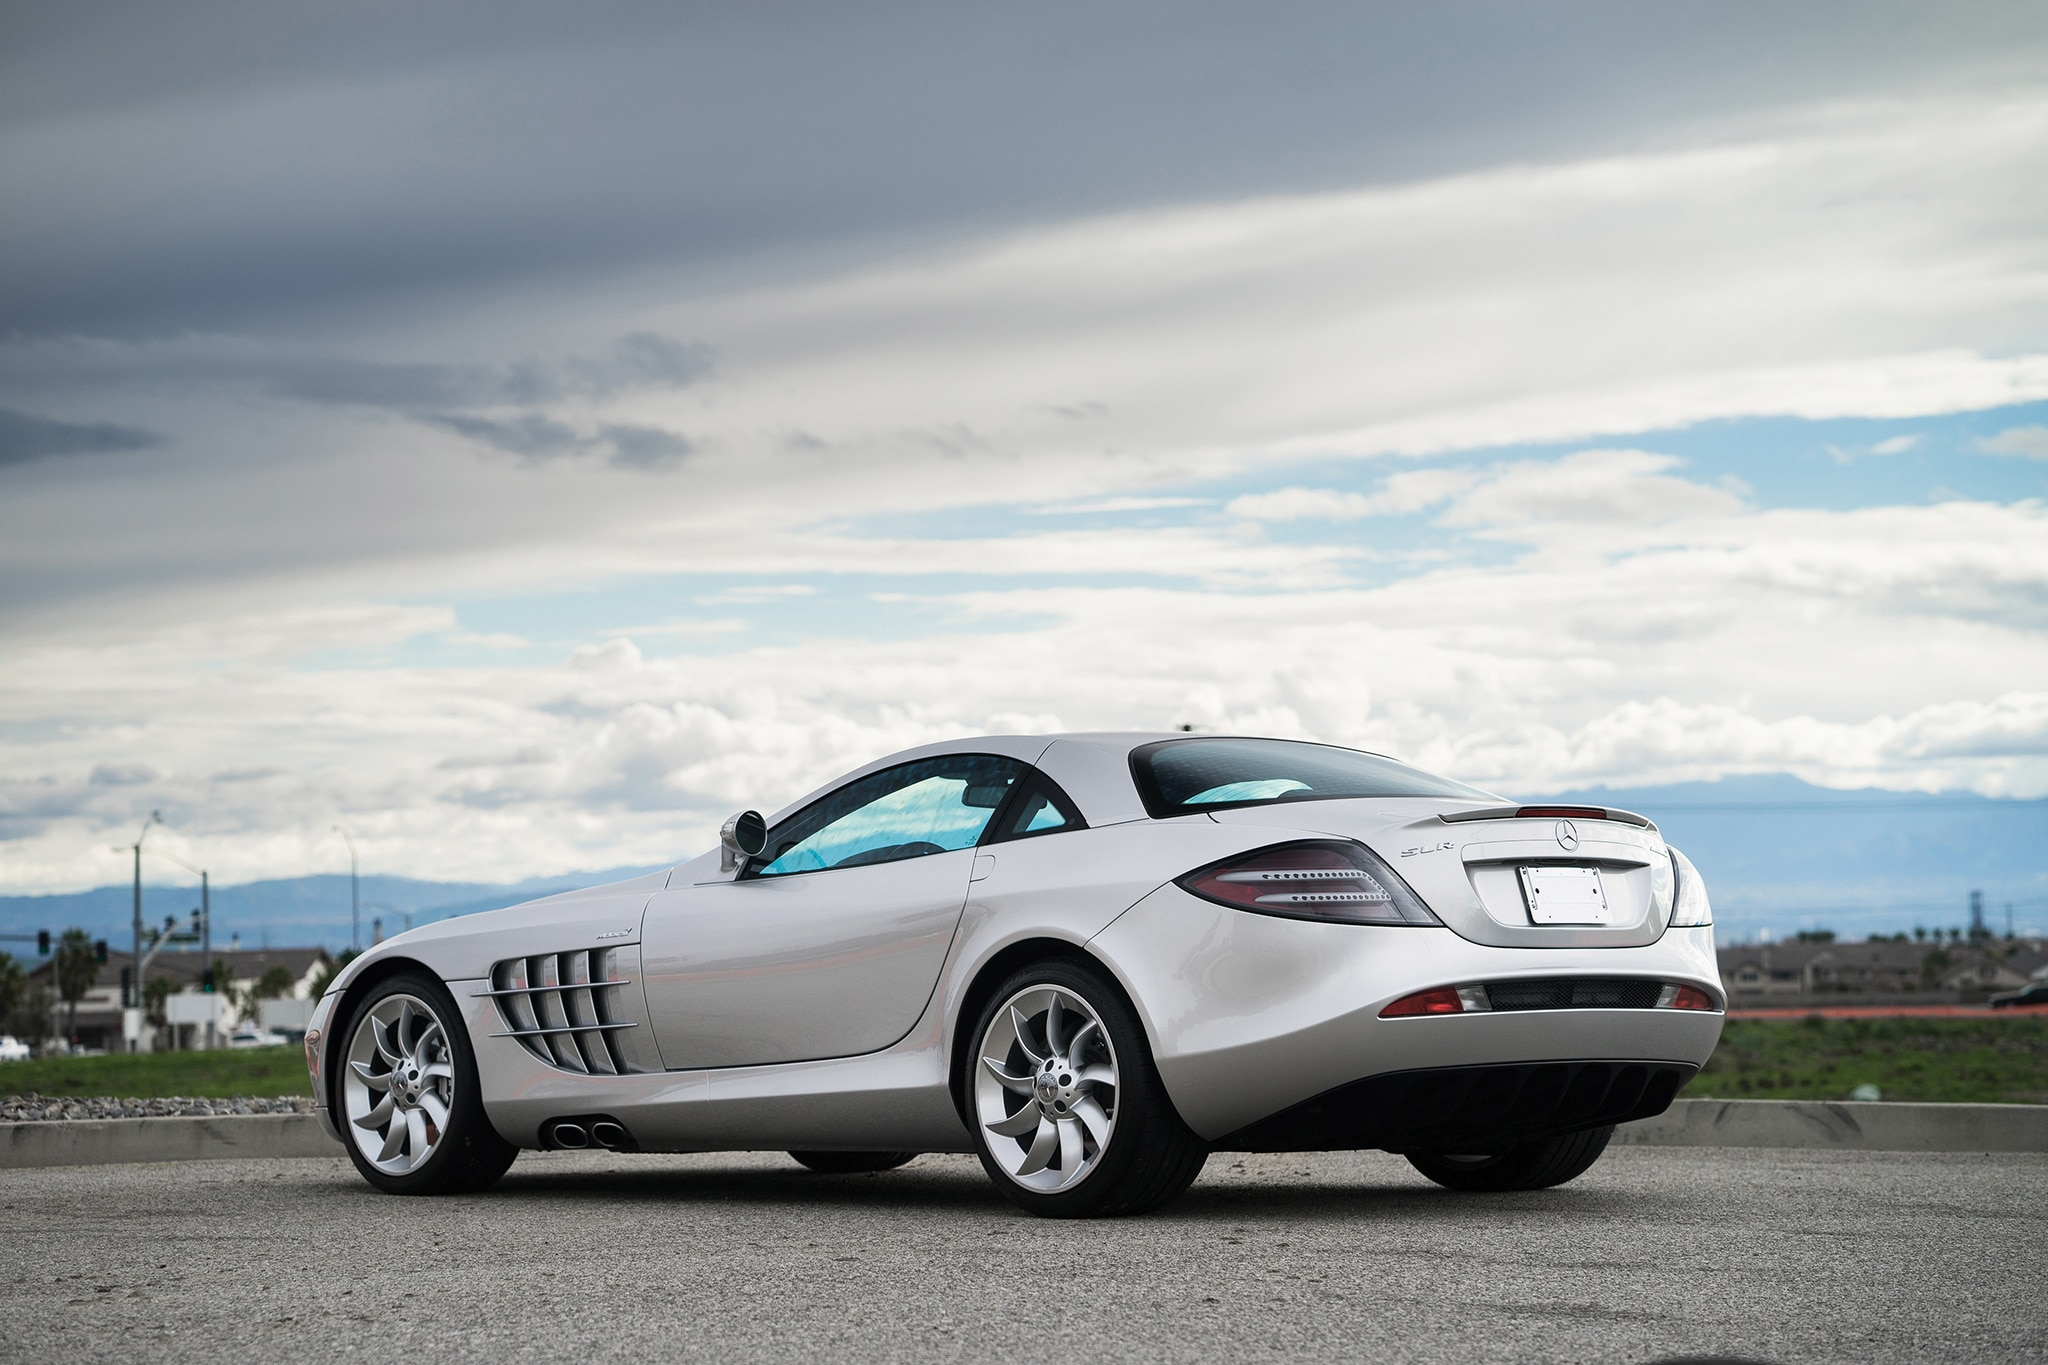 Mercedes-benz slr photo - 5